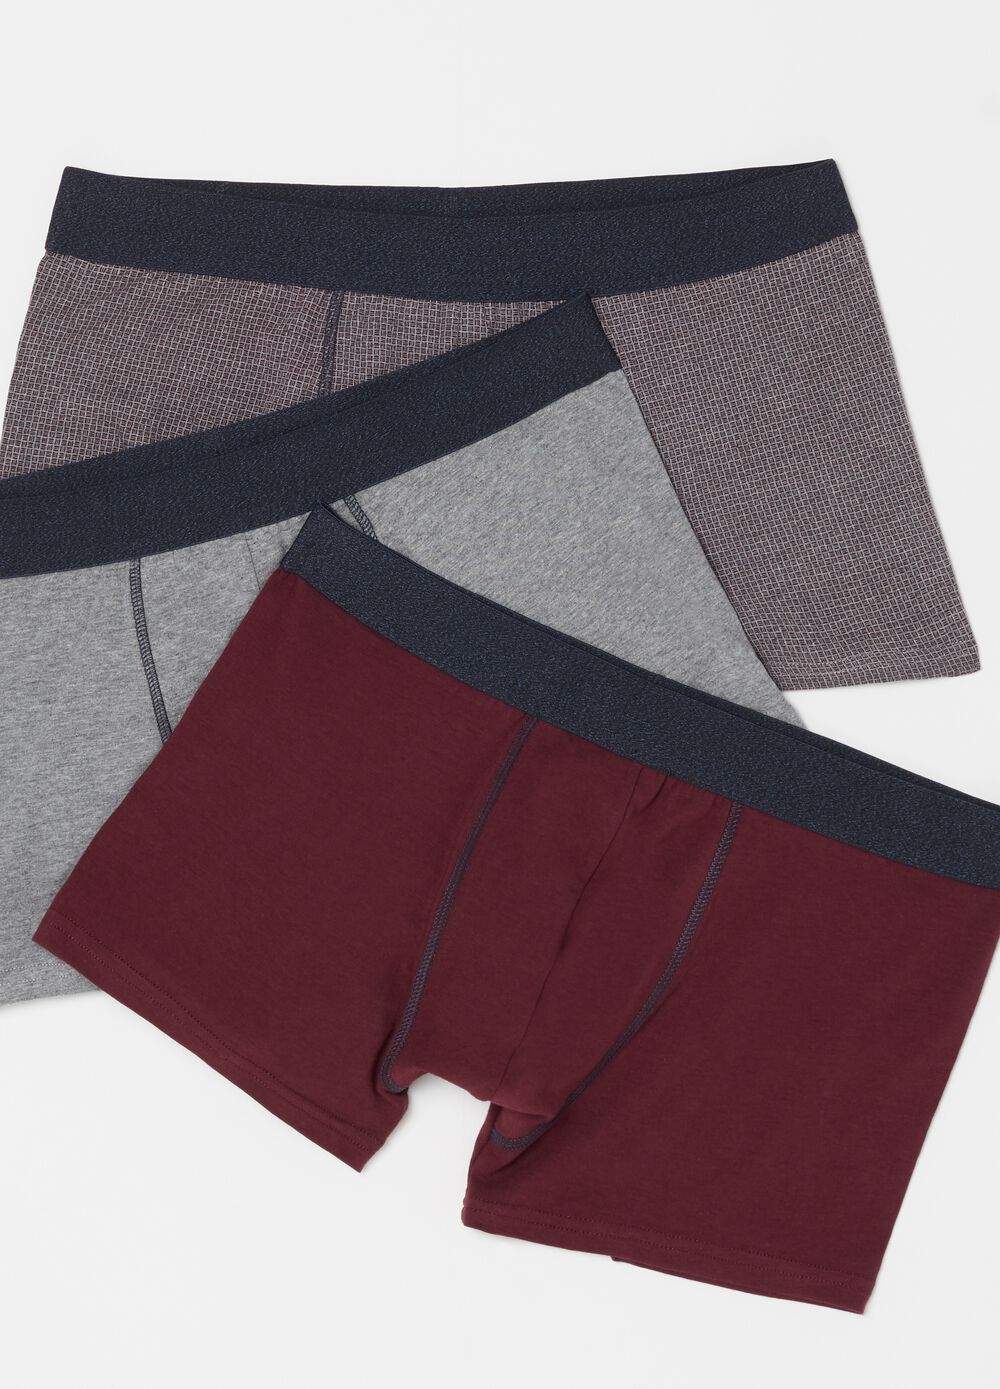 Three-pack patterned boxers in stretch cotton